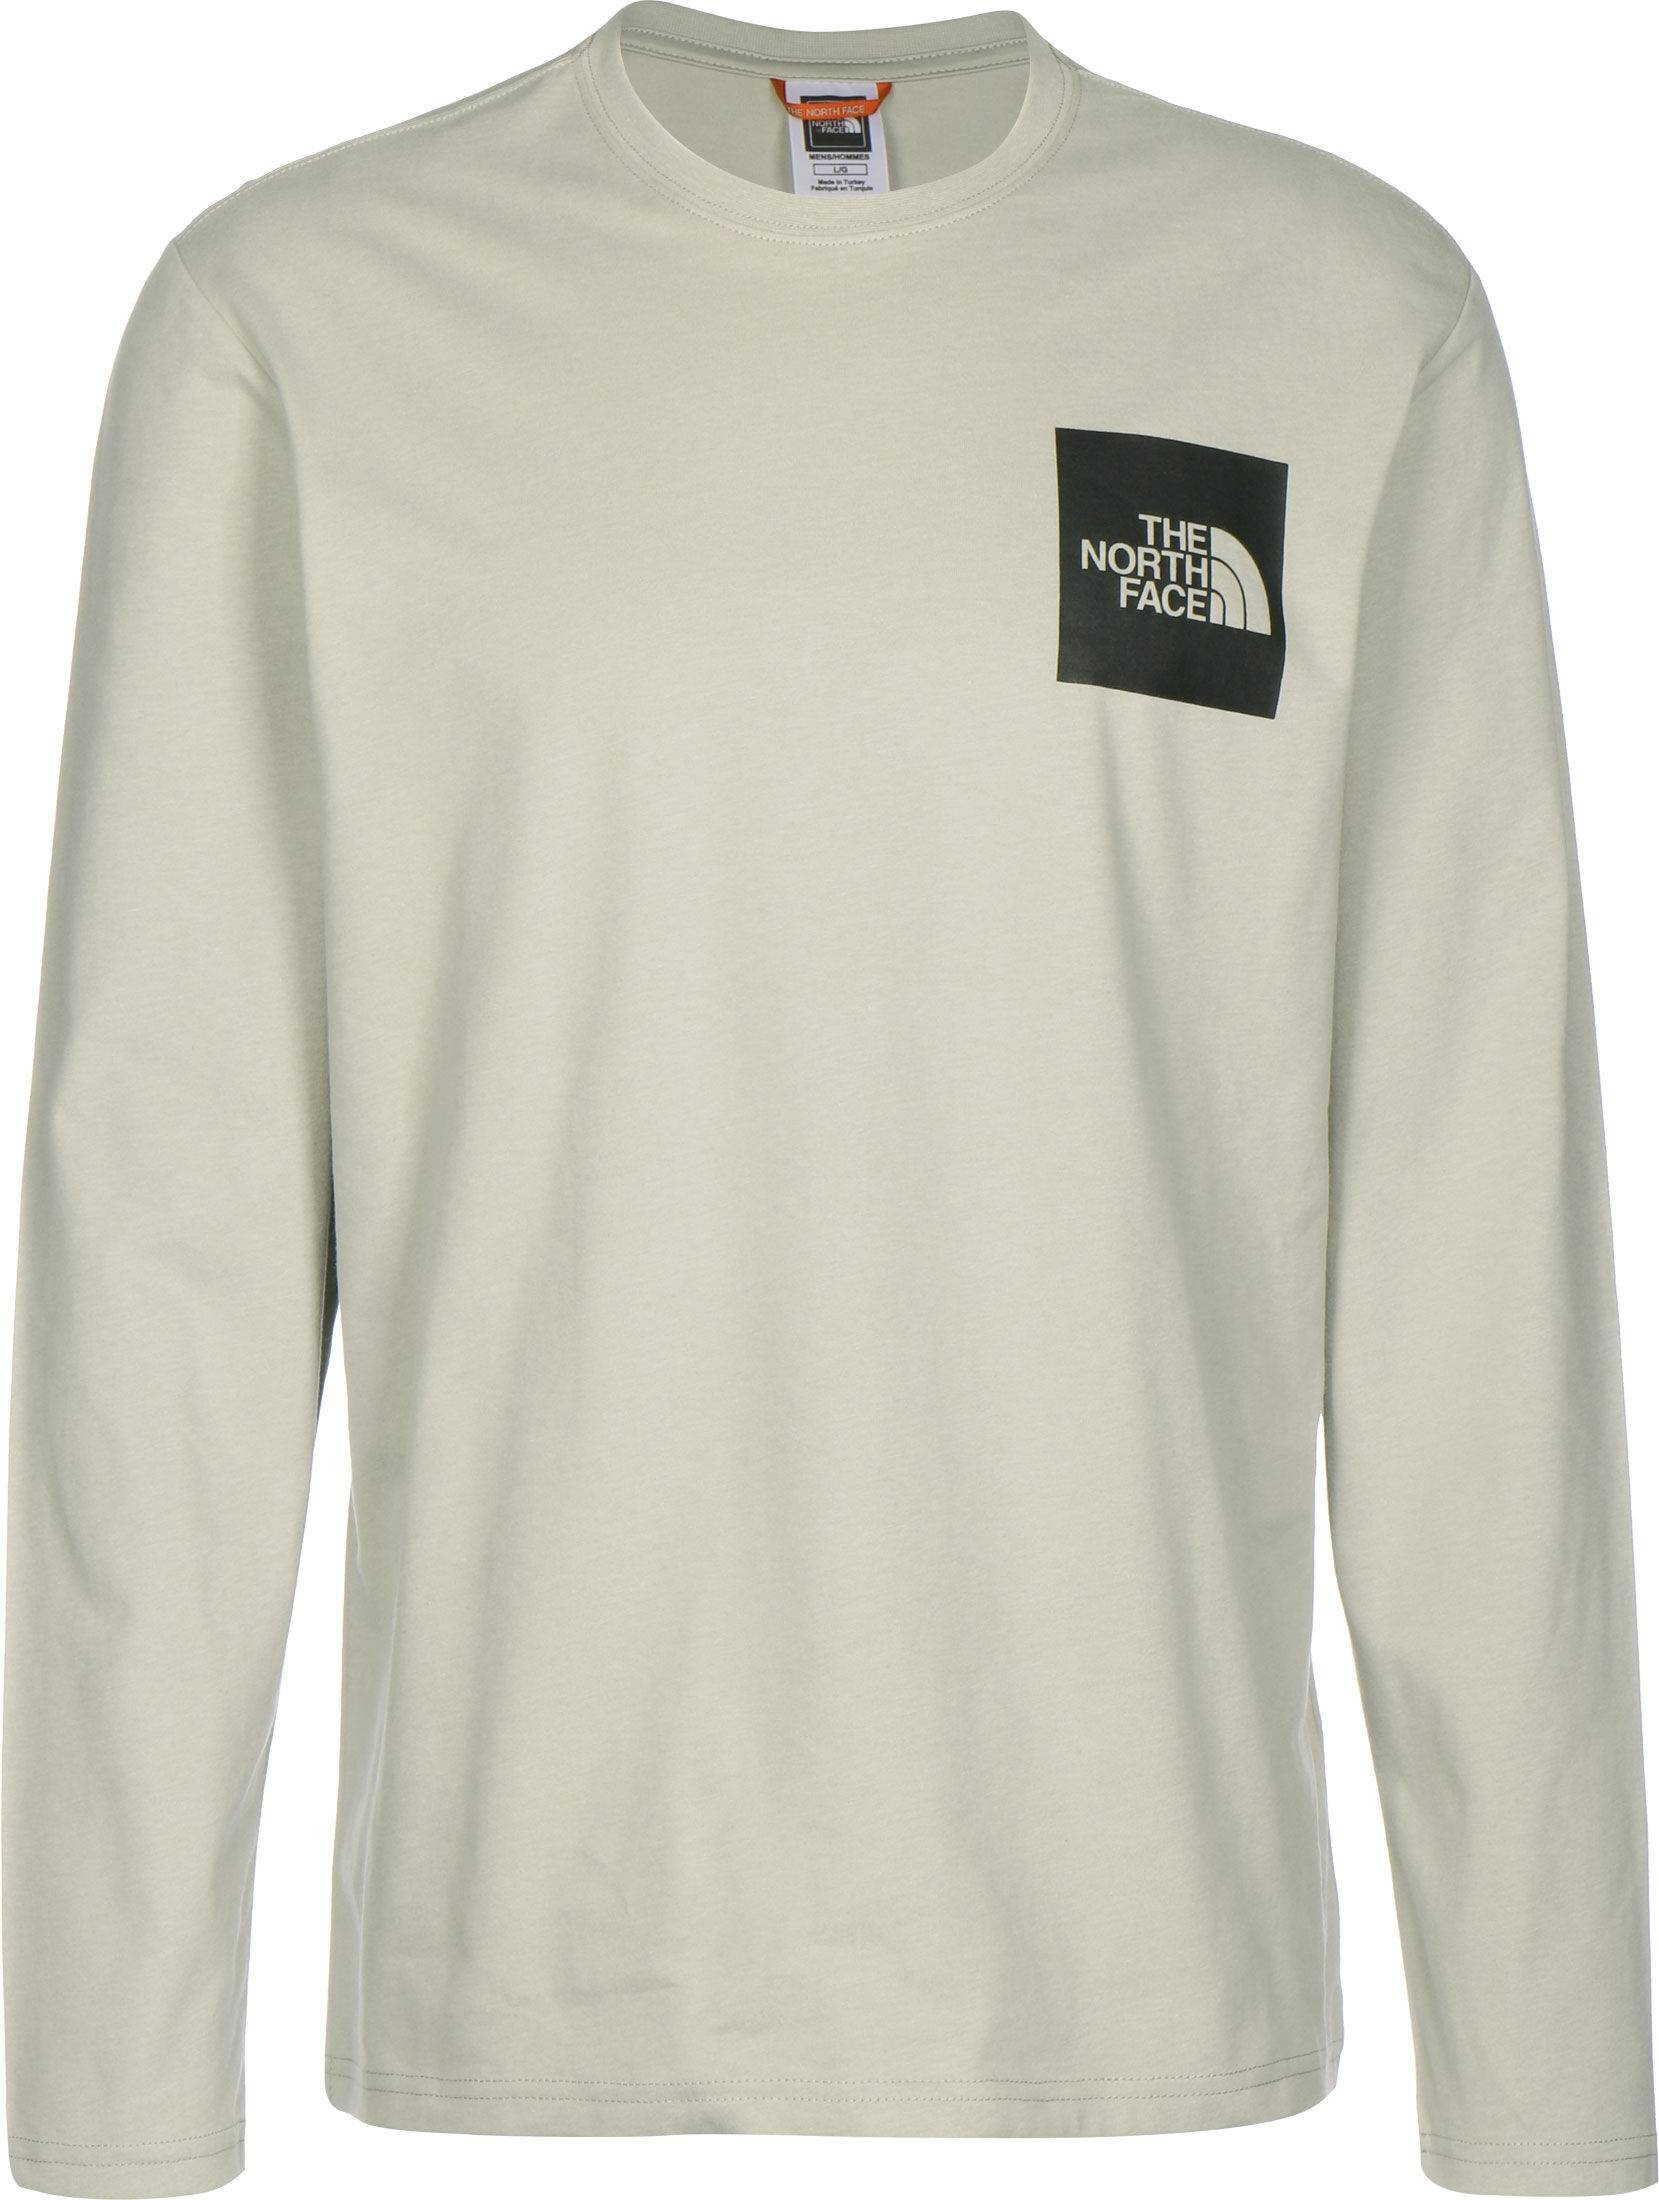 The North Face Fine, taille S, homme, vert